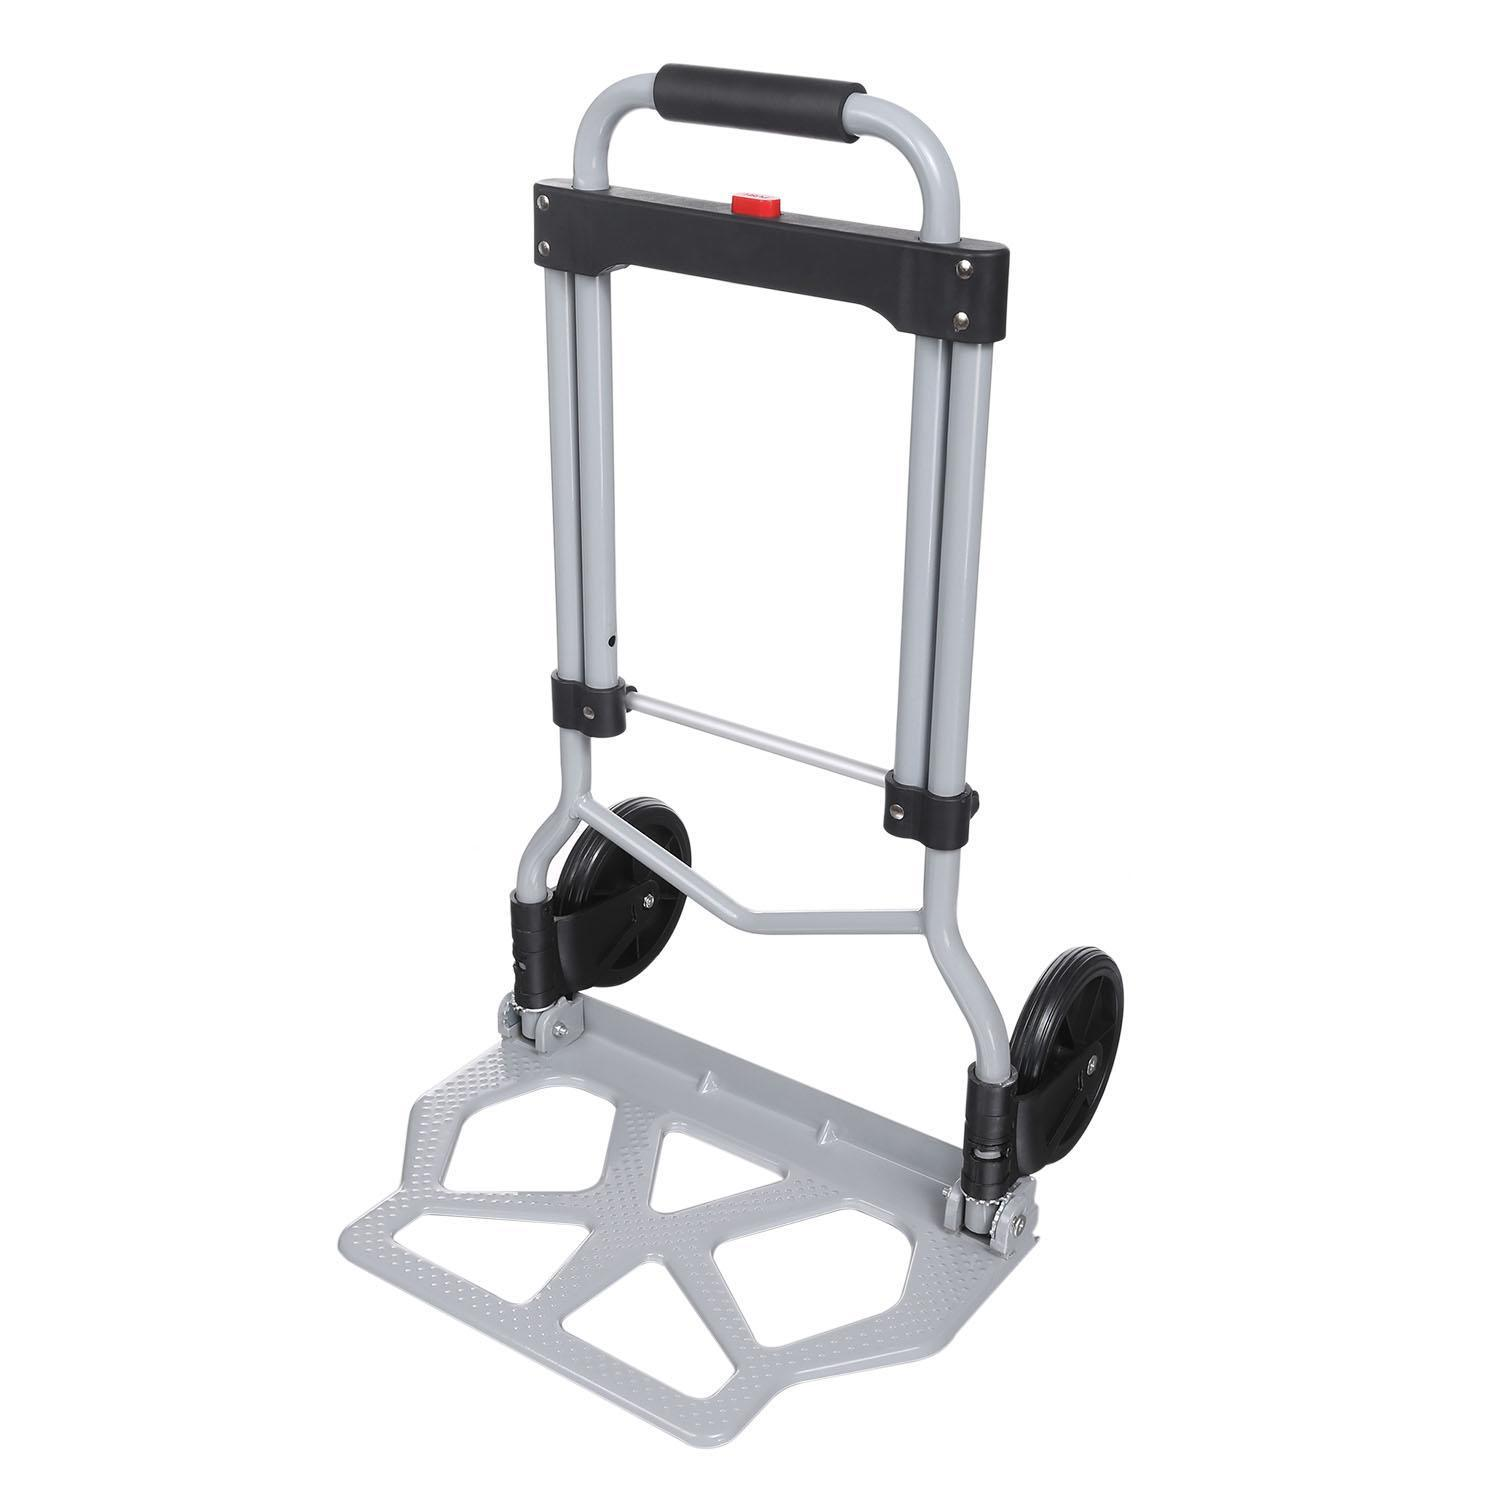 Clearance ! Portable Folding Hand Truck Dolly Luggage Carts, Silver, 220 lbs Capacity, Industrial Travel... by